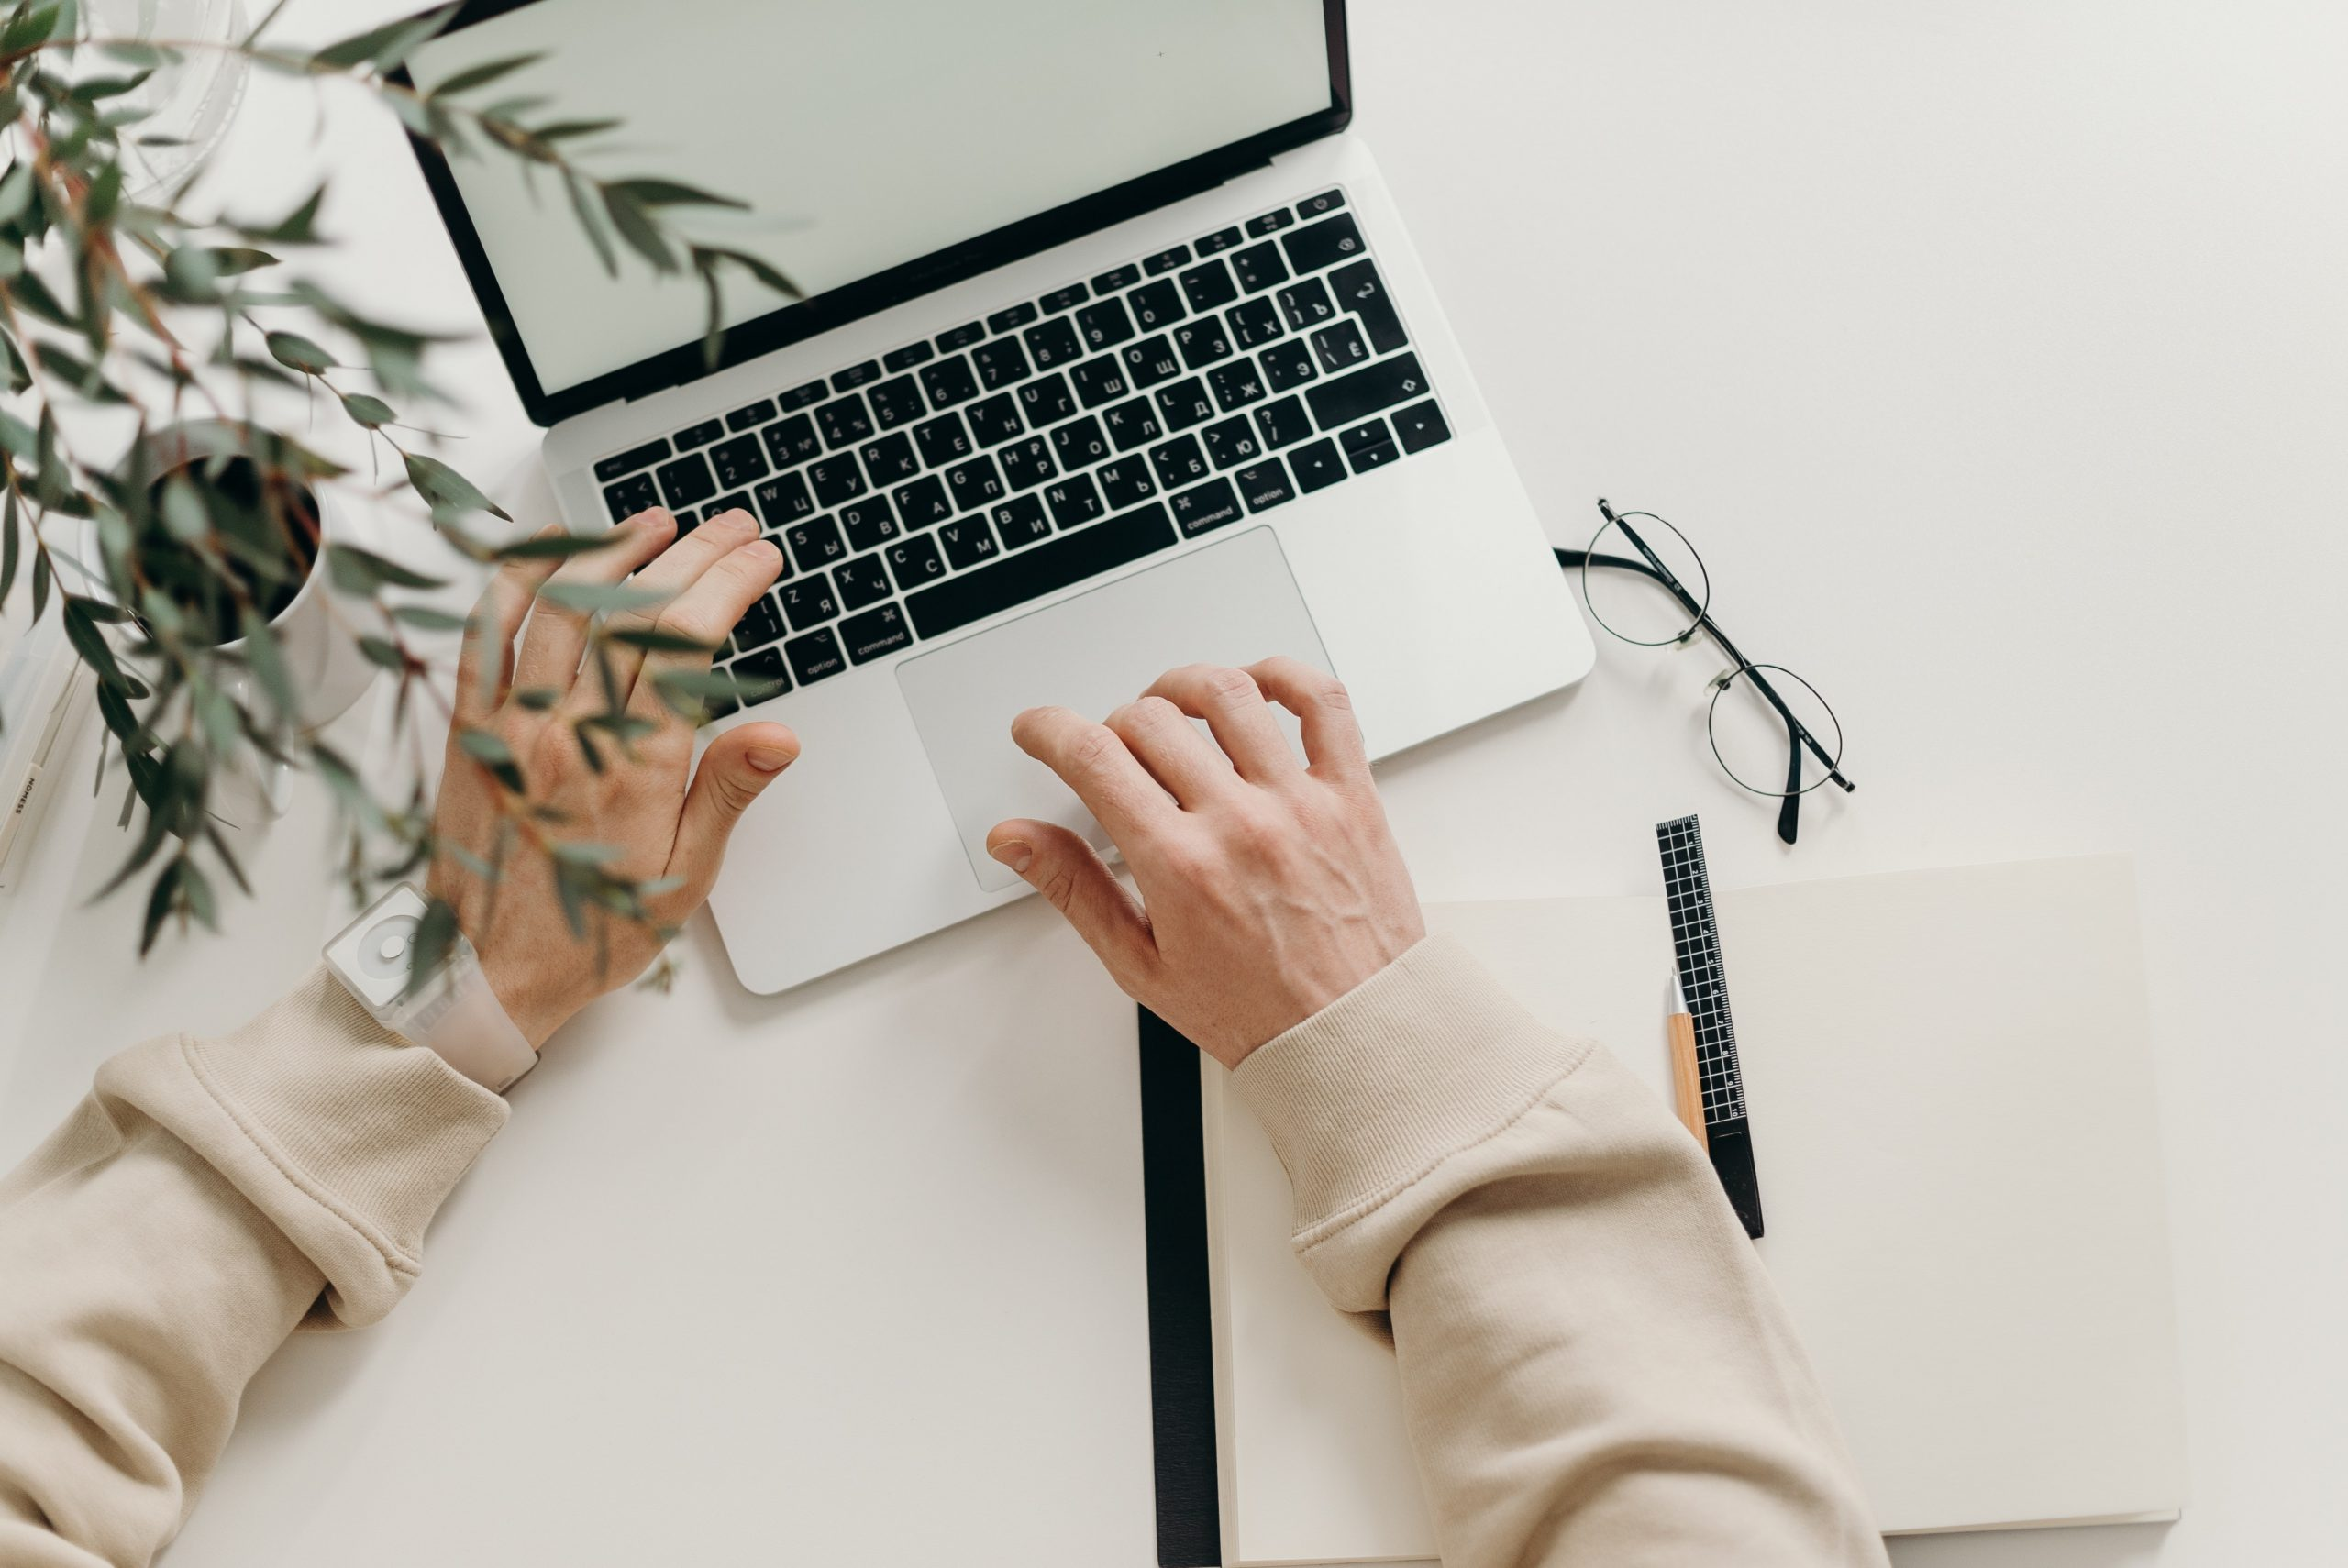 Paid Surveys: Everything you Need to Know to Make the Most Money